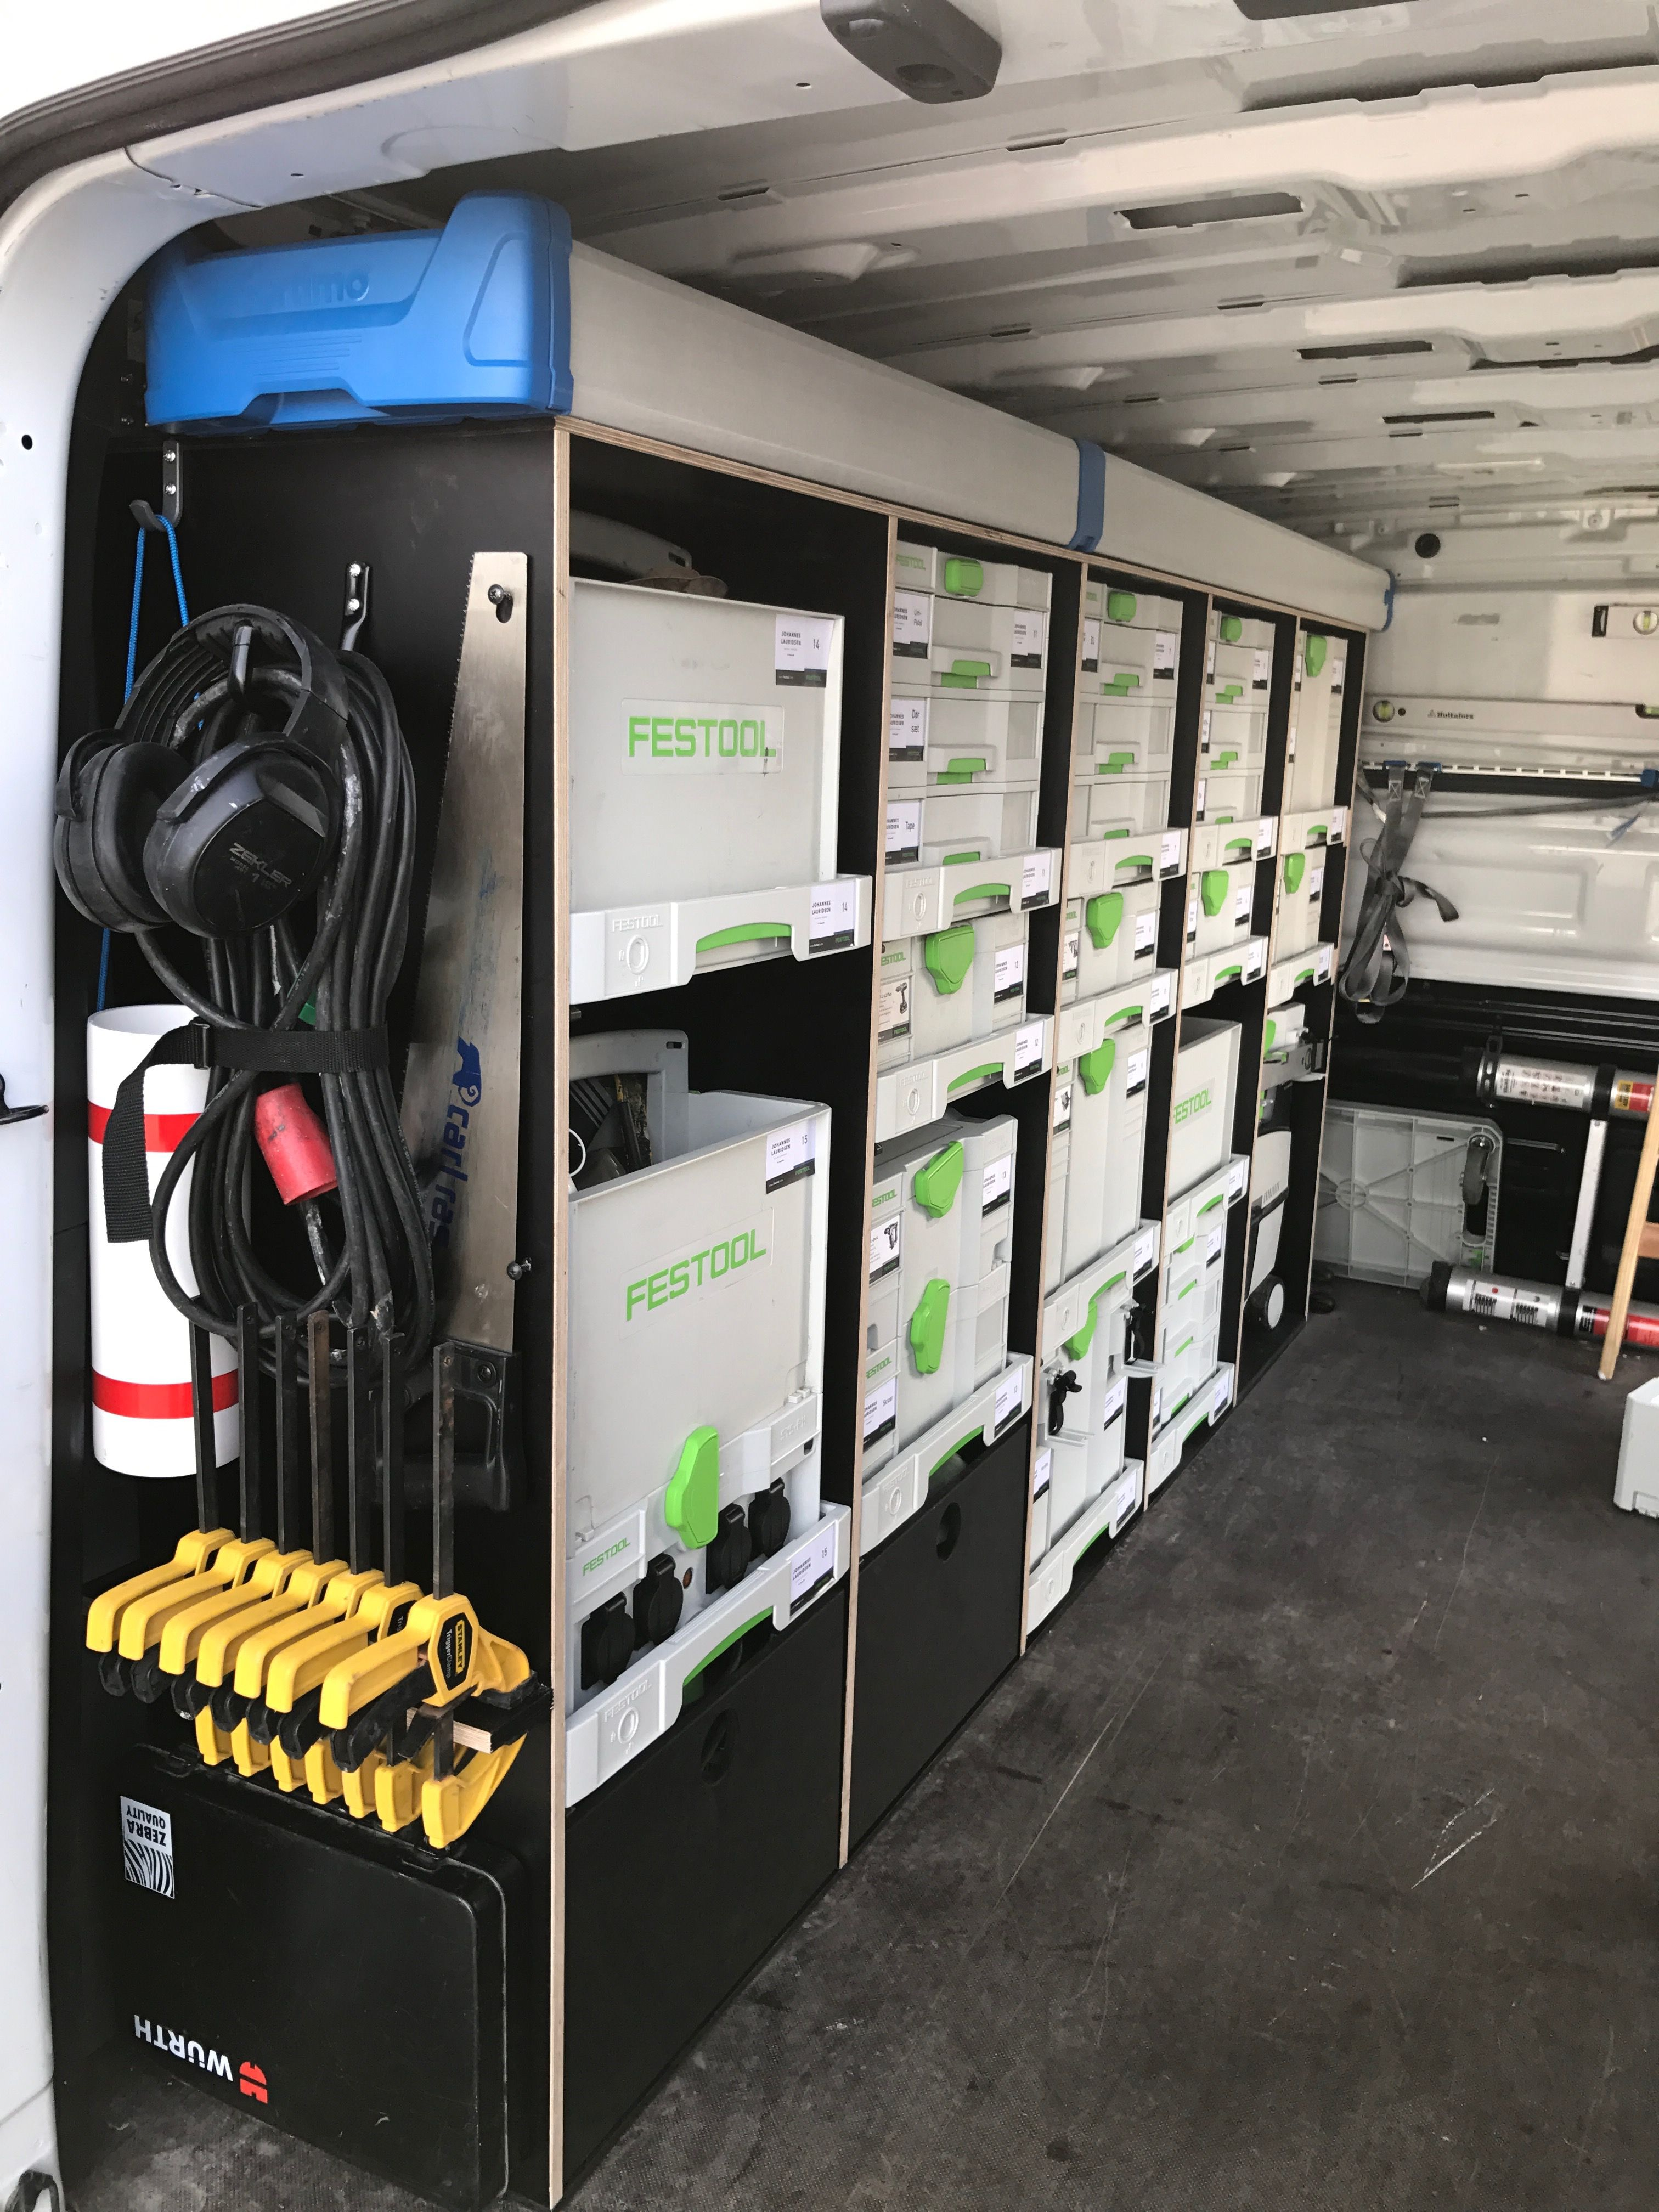 Auto Regale Sortimo Festool Van Racking Sysport Systainer In 2019